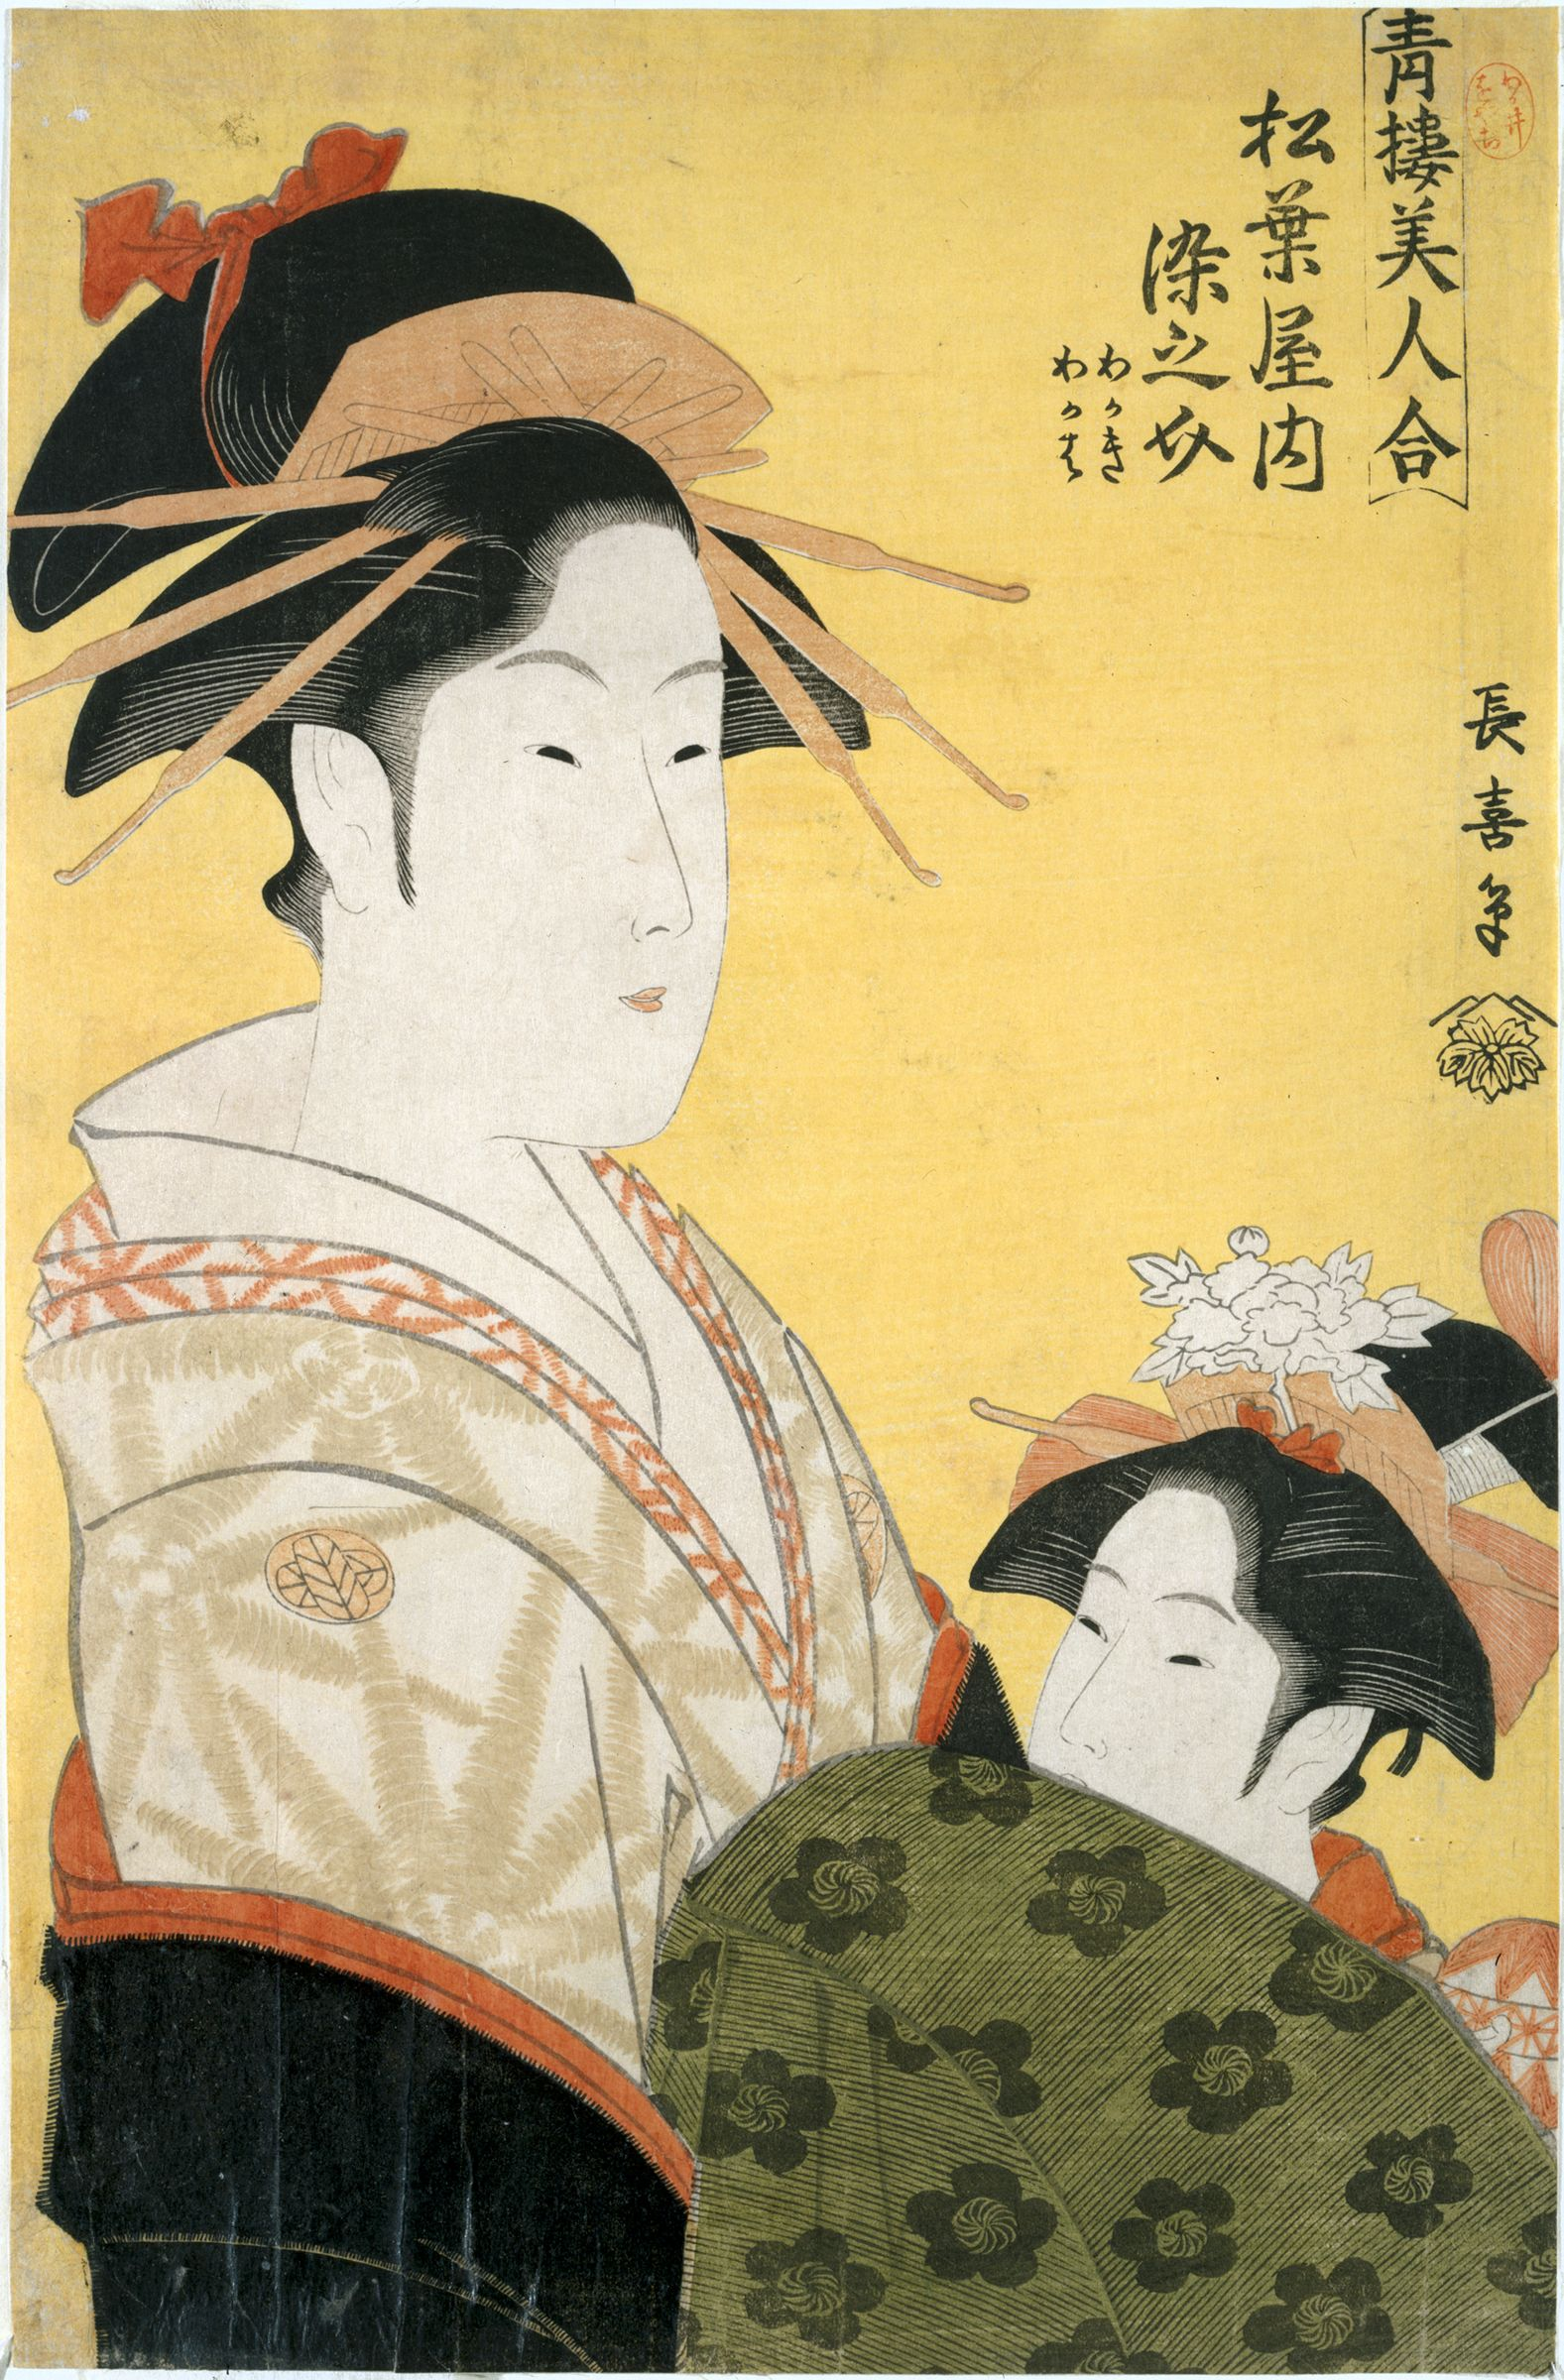 Courtesan Somenosuke Of The Matsubaya (Matsubaya Uchi Somenosuke), From The Series